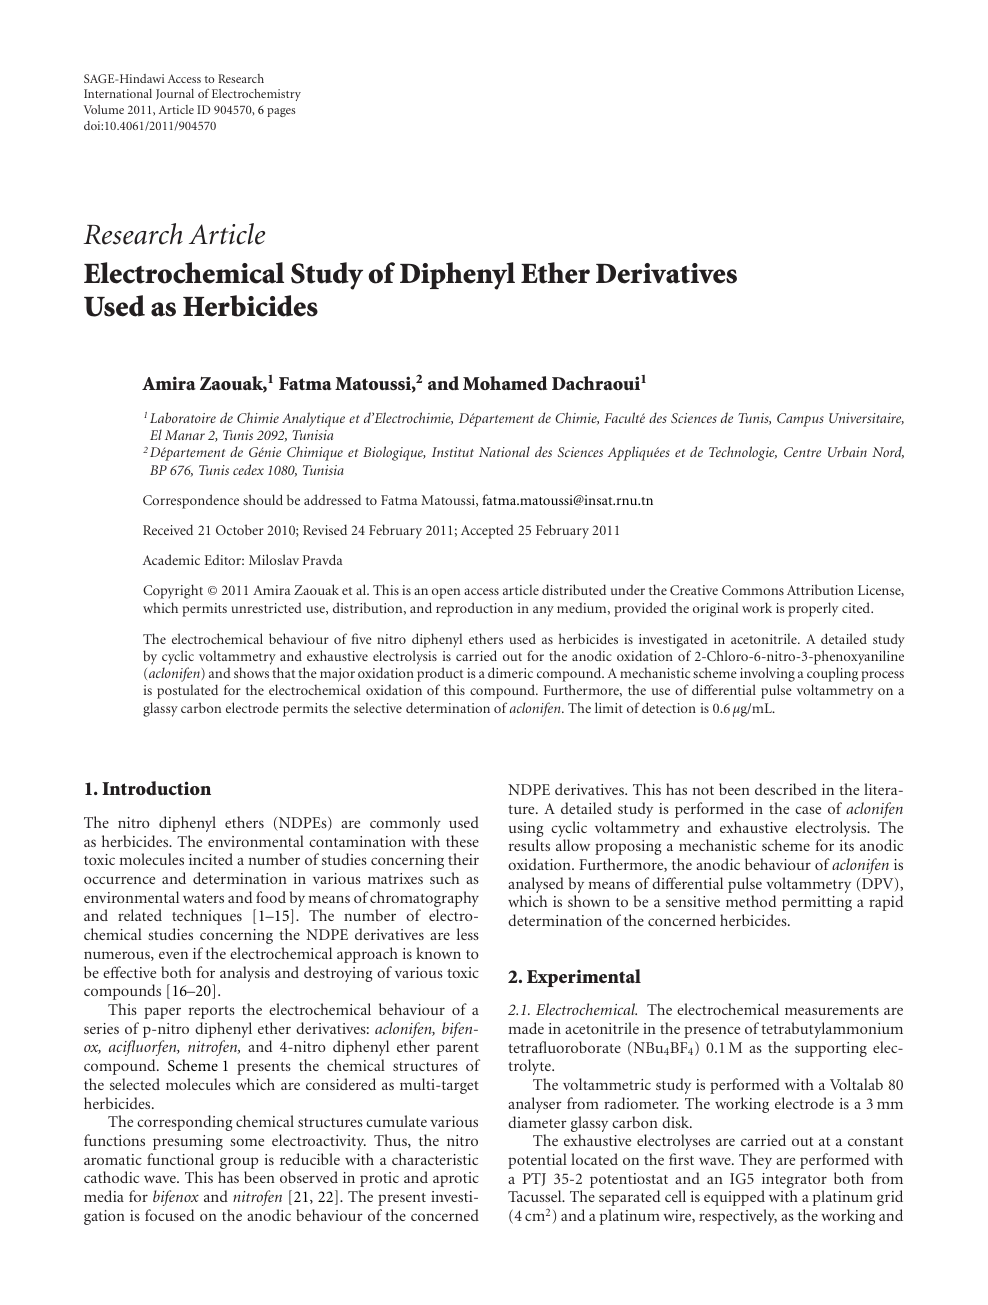 Electrochemical Study of Diphenyl Ether Derivatives Used as